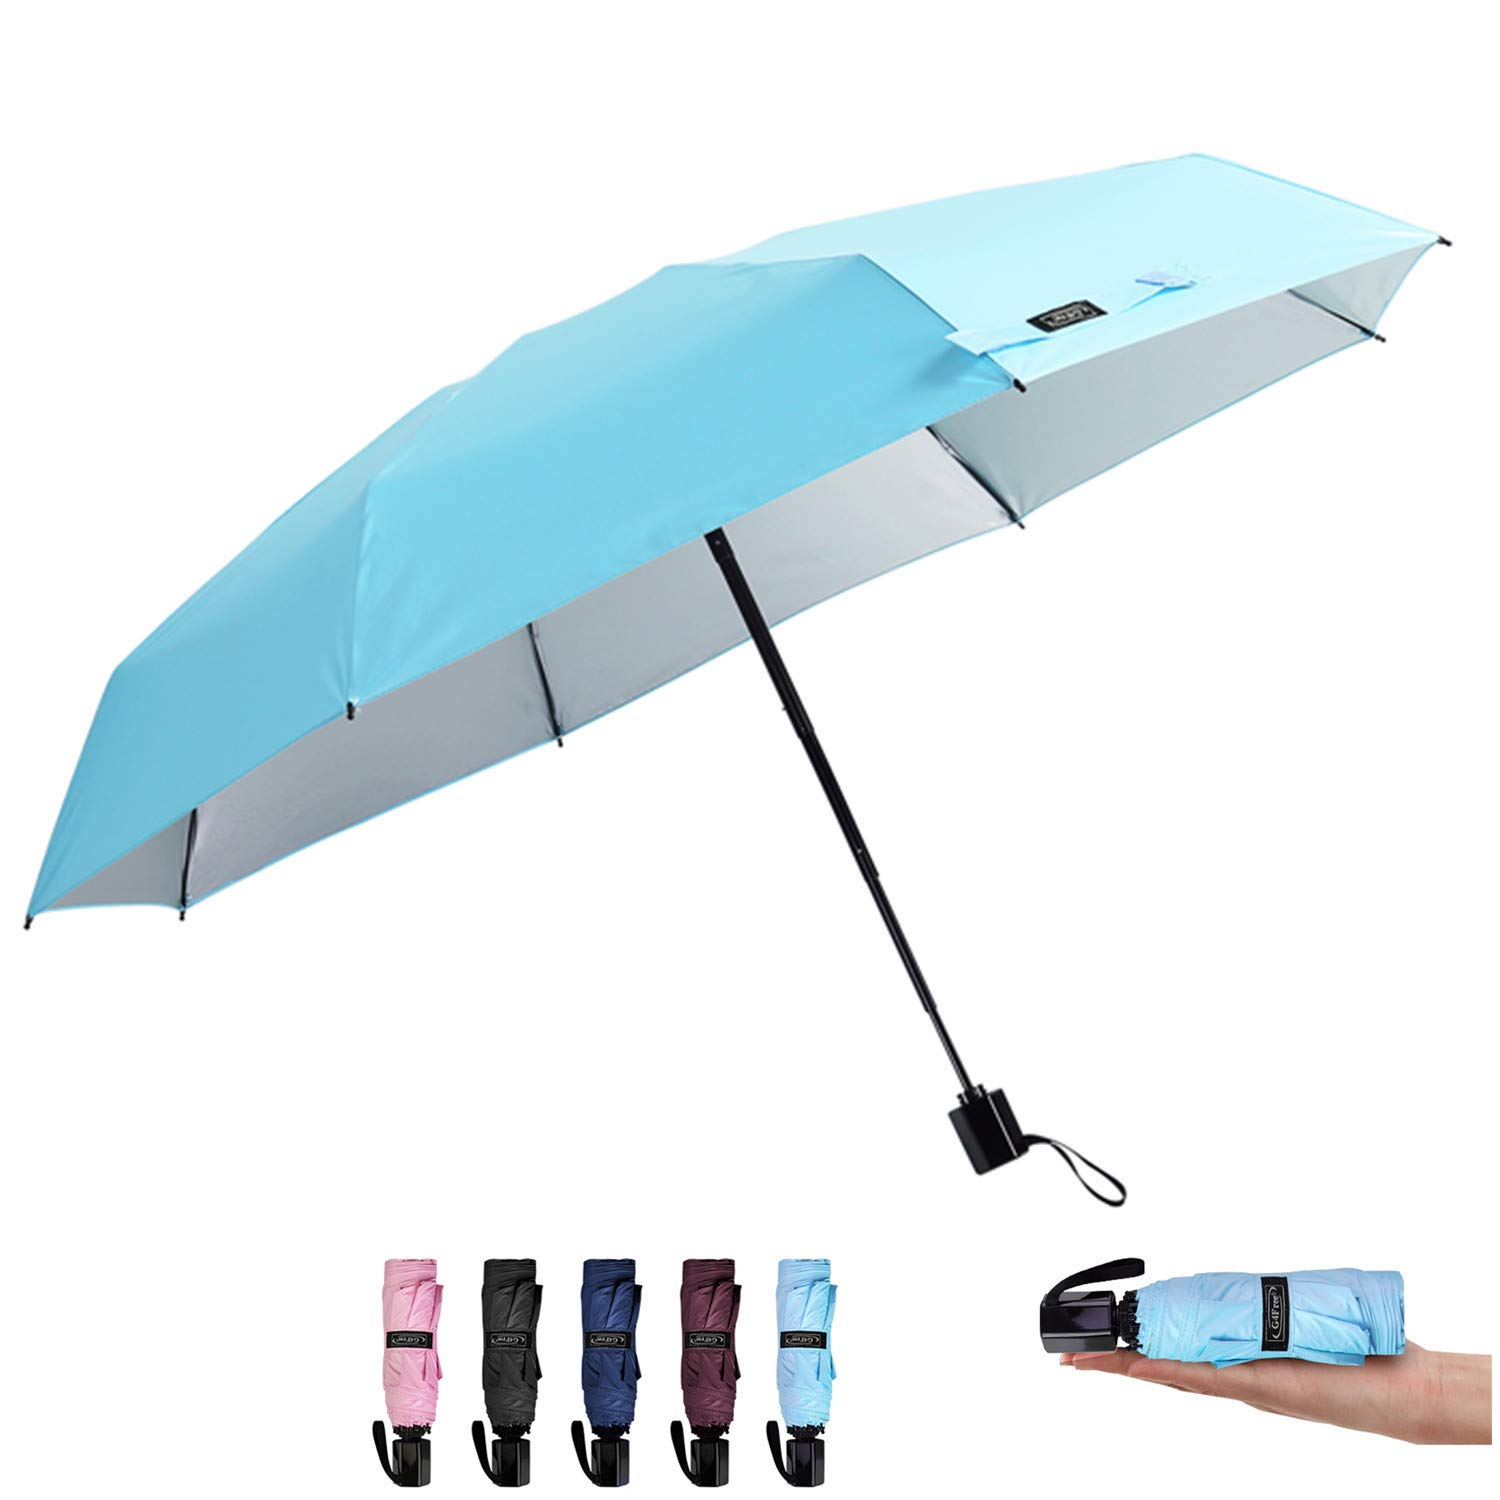 0e95c08c9fa1 Umbrellas : Online Shopping for Clothing, Shoes, Jewelry, Pet ...